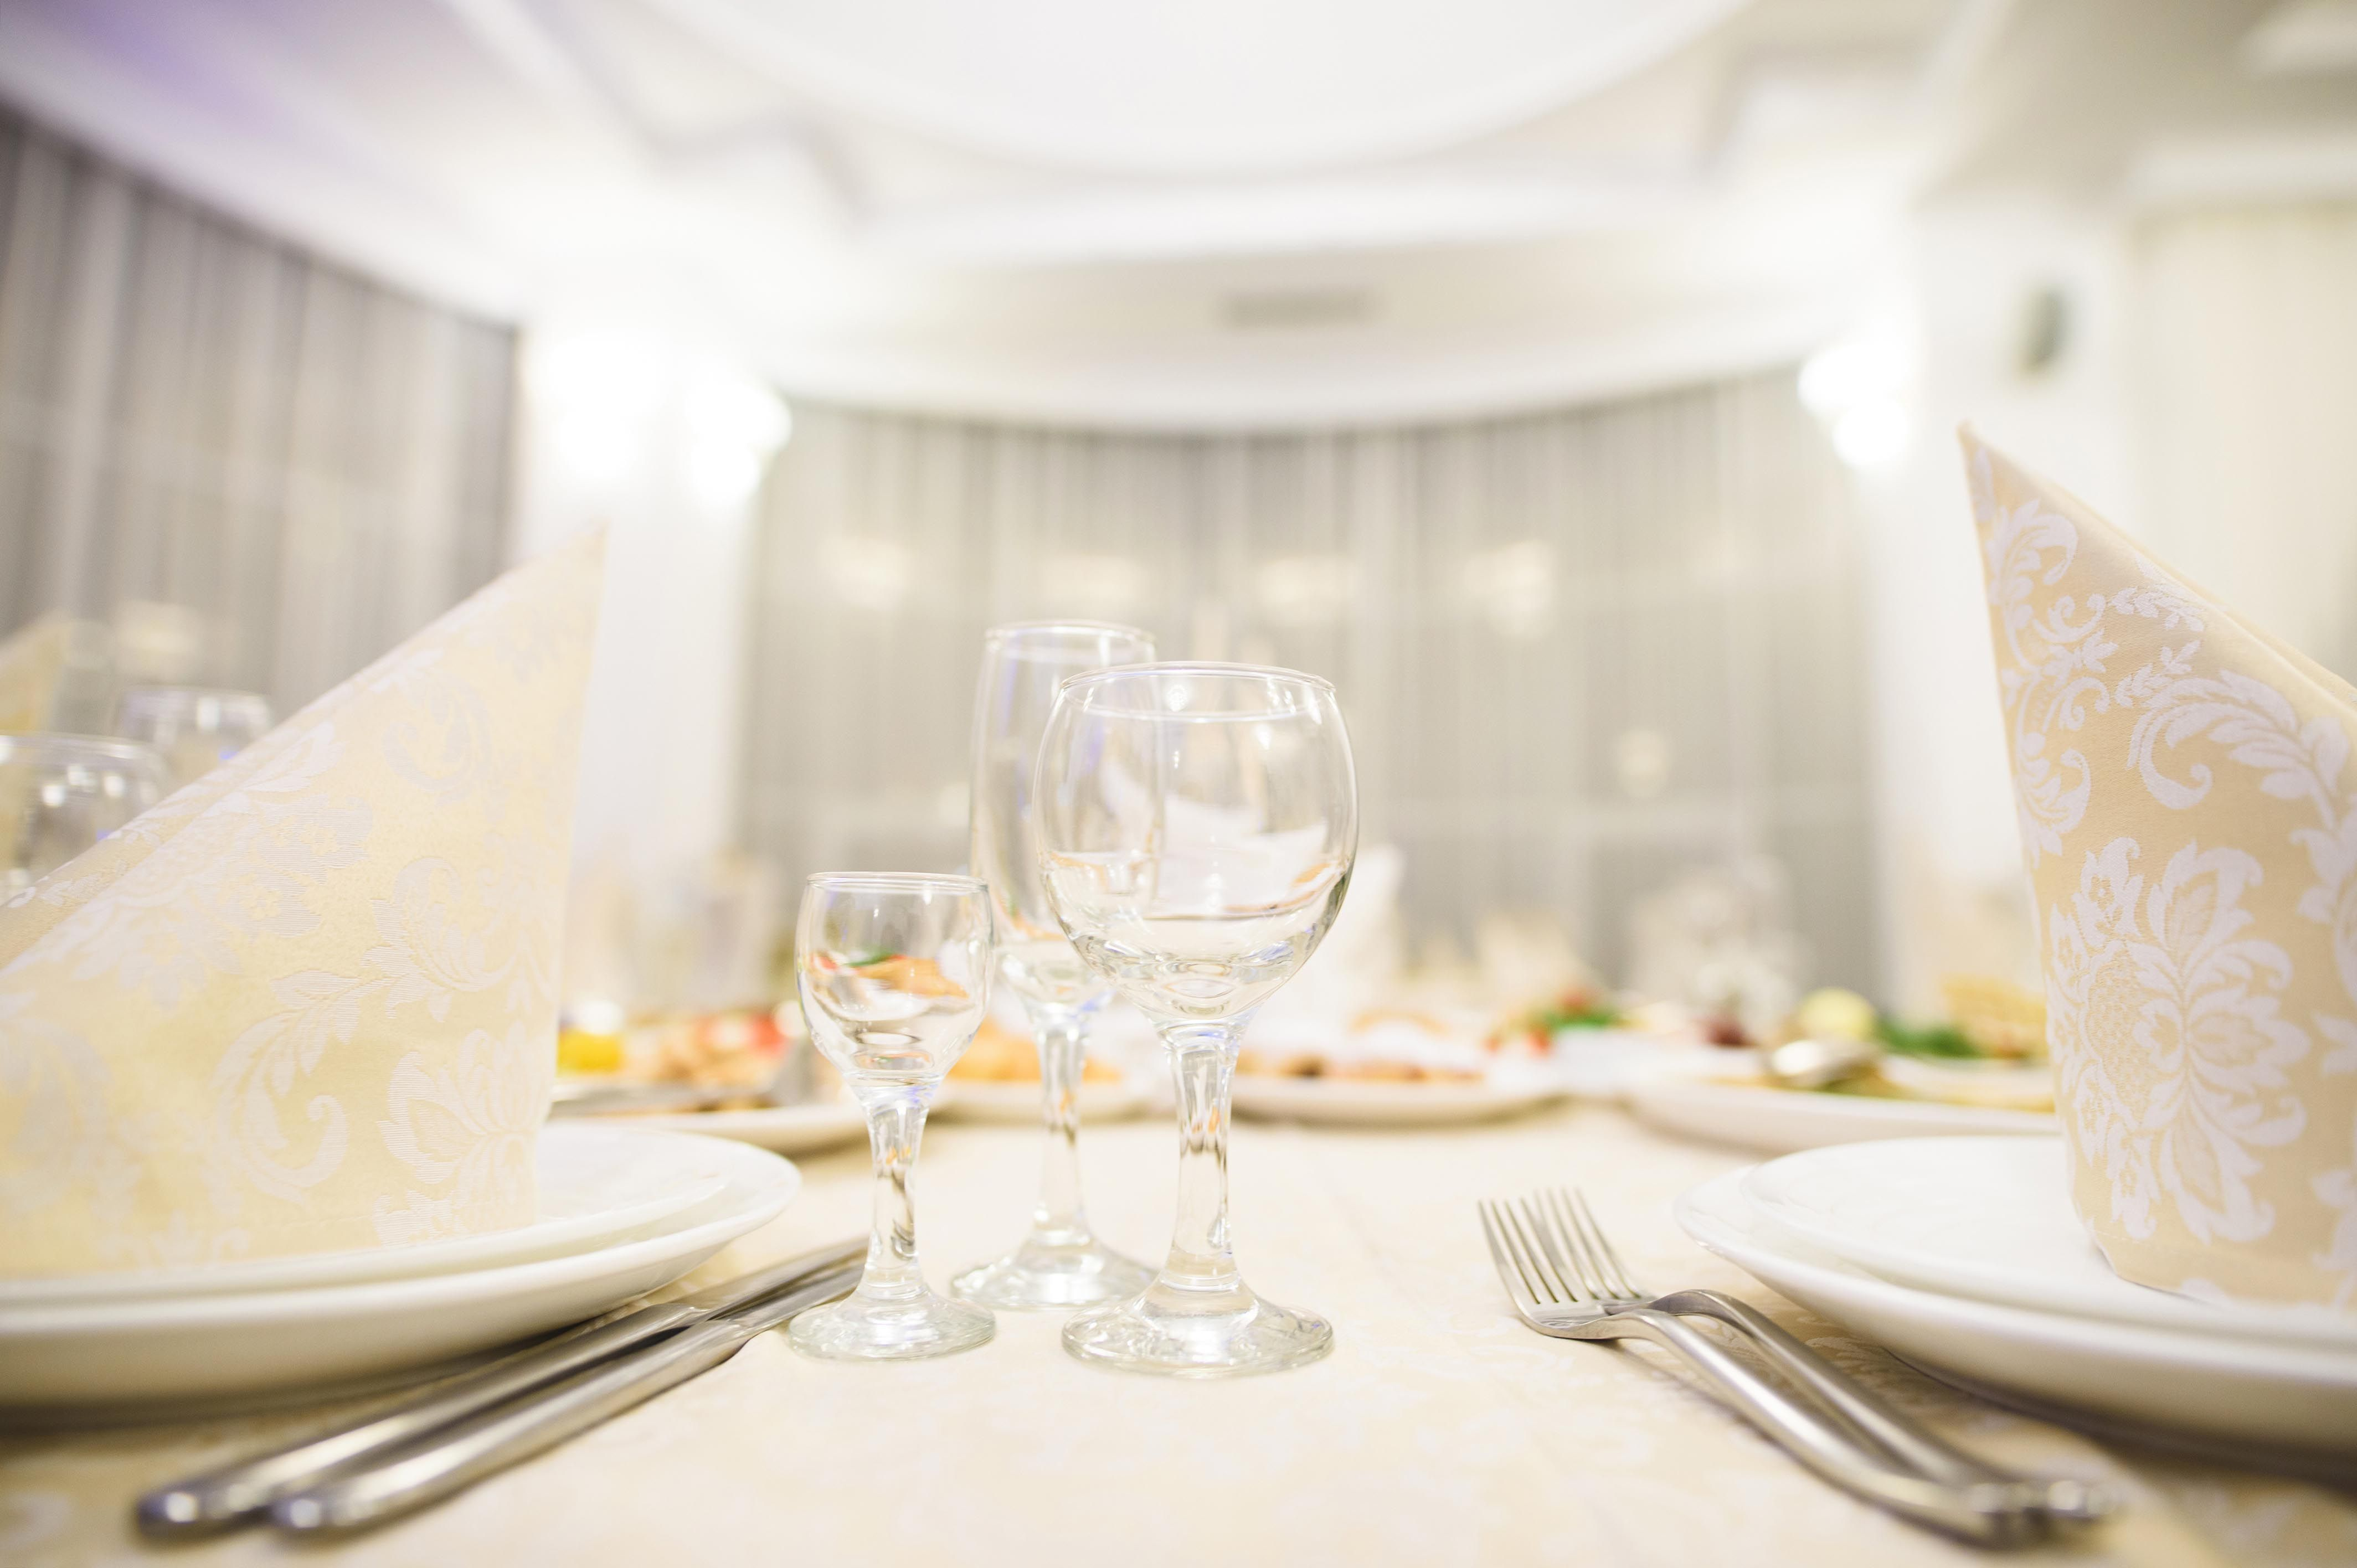 Exceptional catering laundry in hucclecote